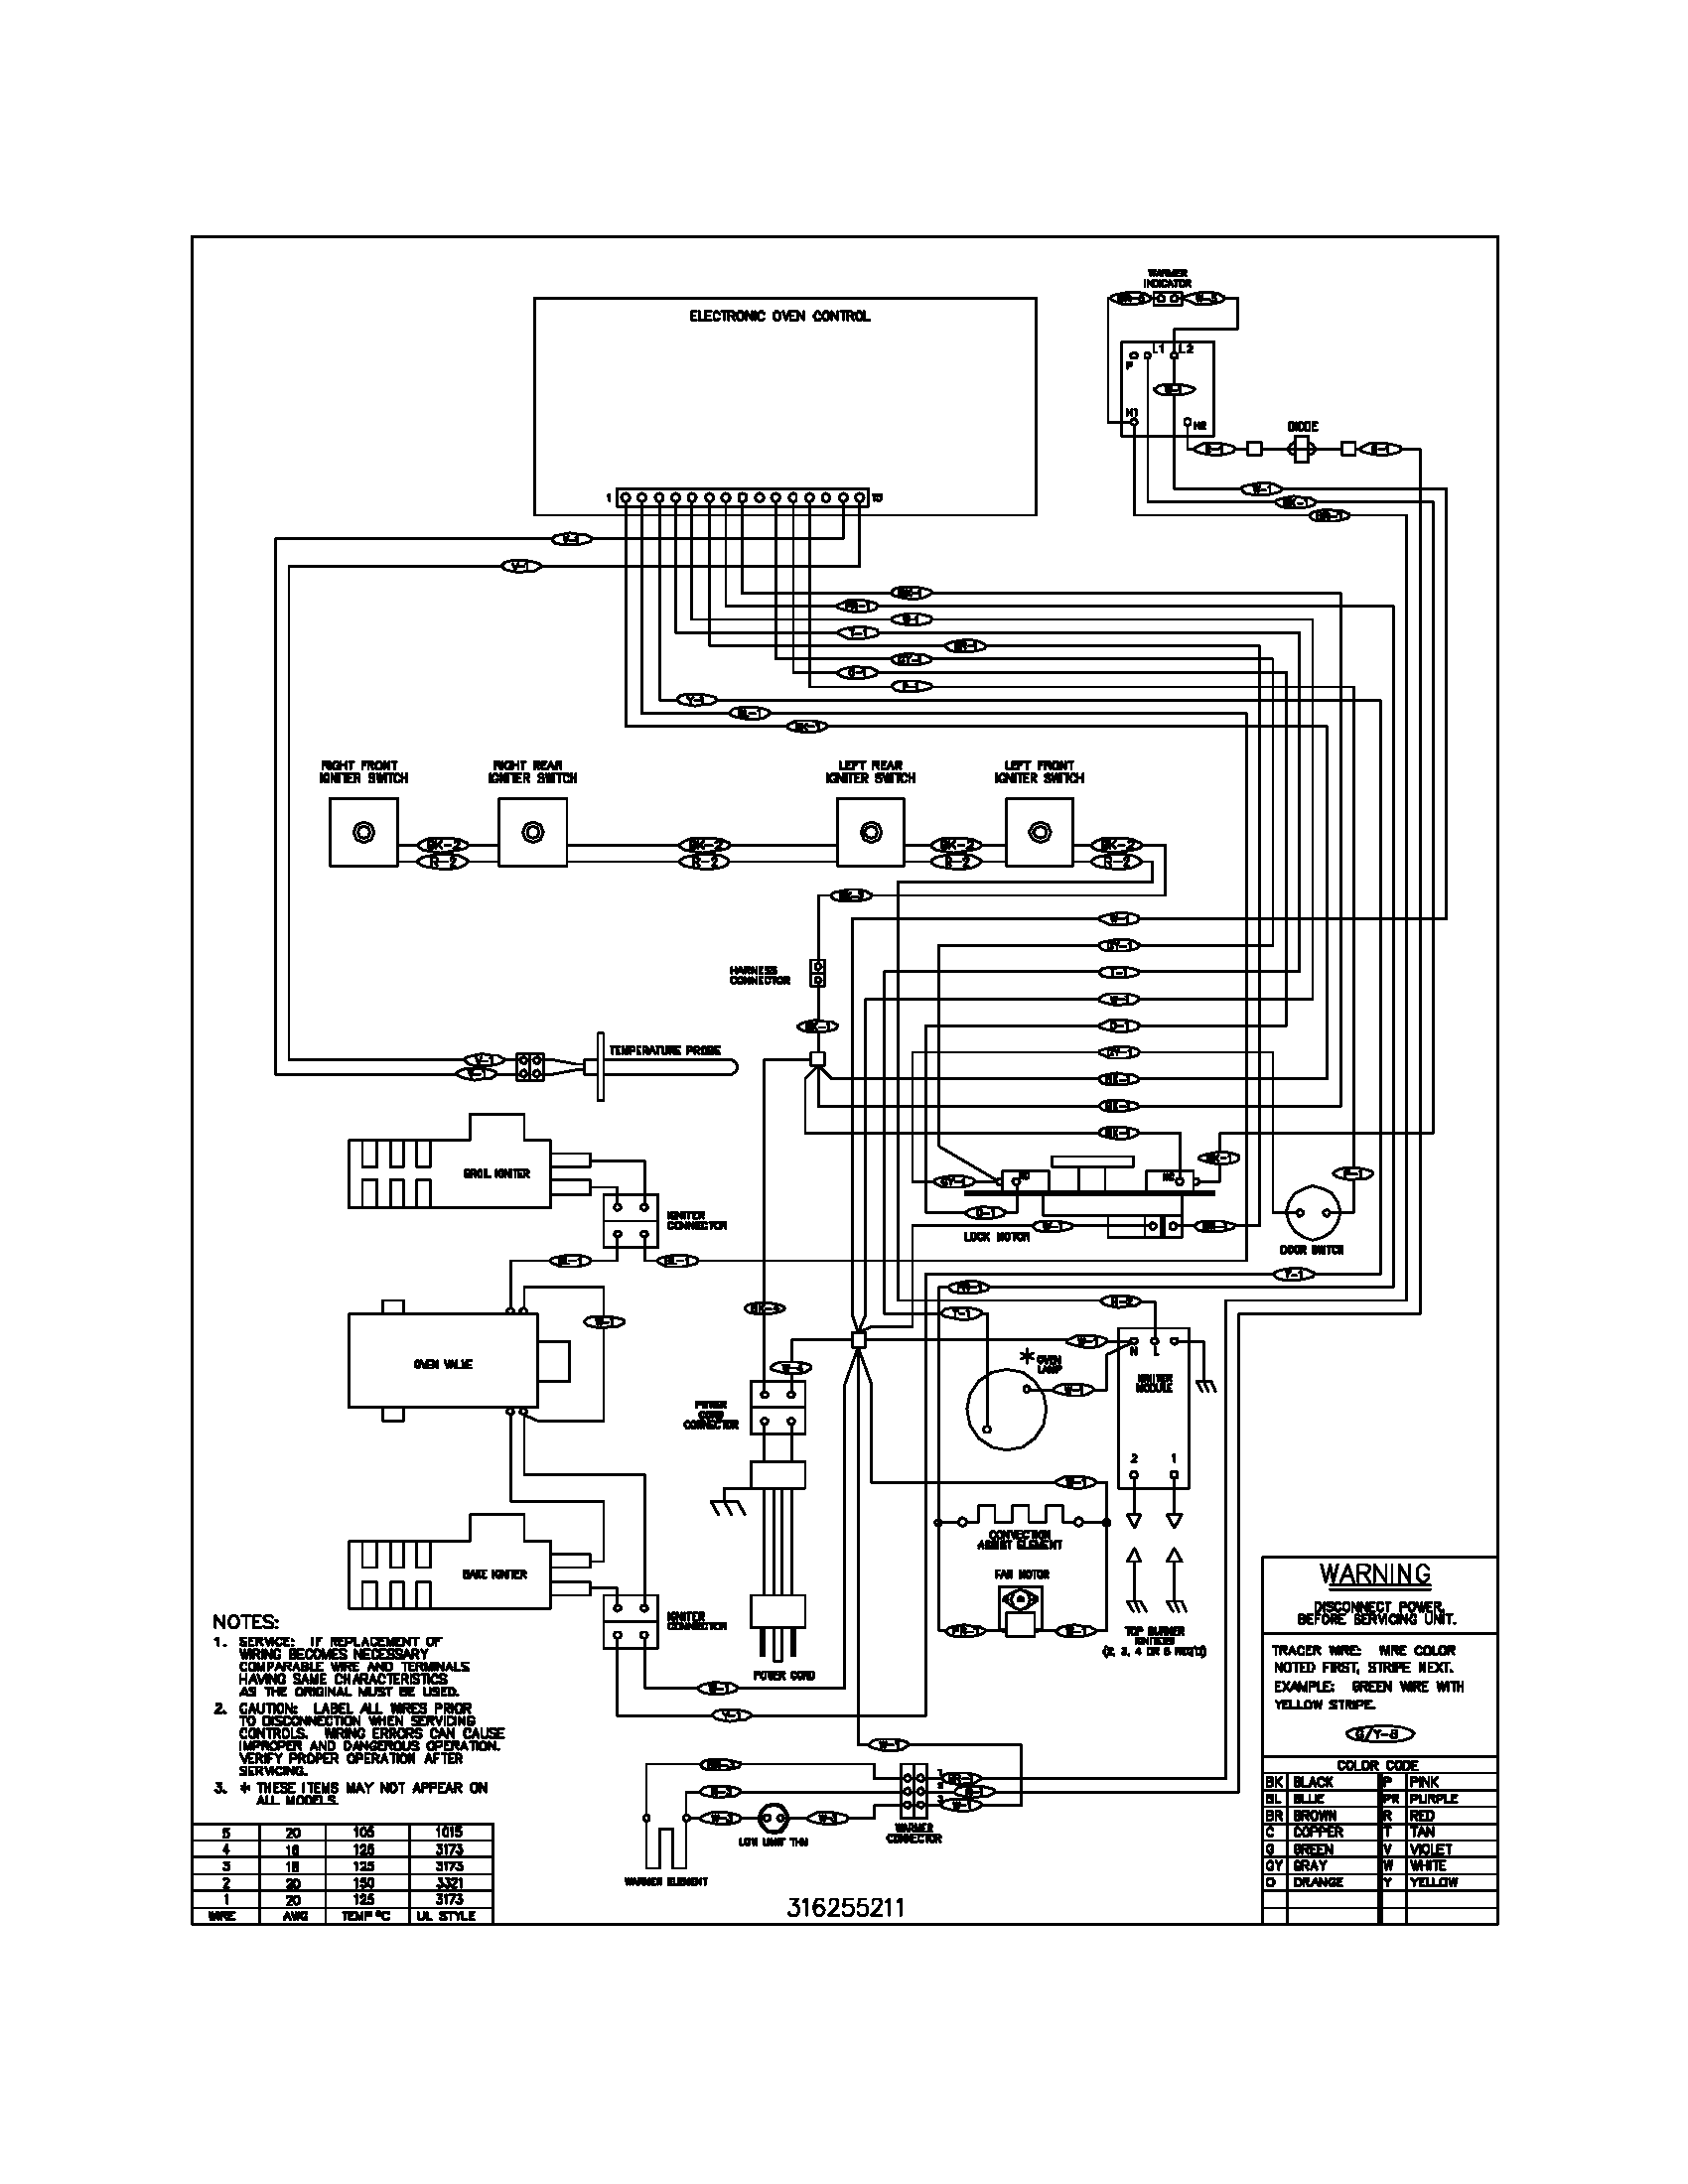 Frigidaire Refrigerator Compressor Diagram - 12.12.ms-physiotherapie